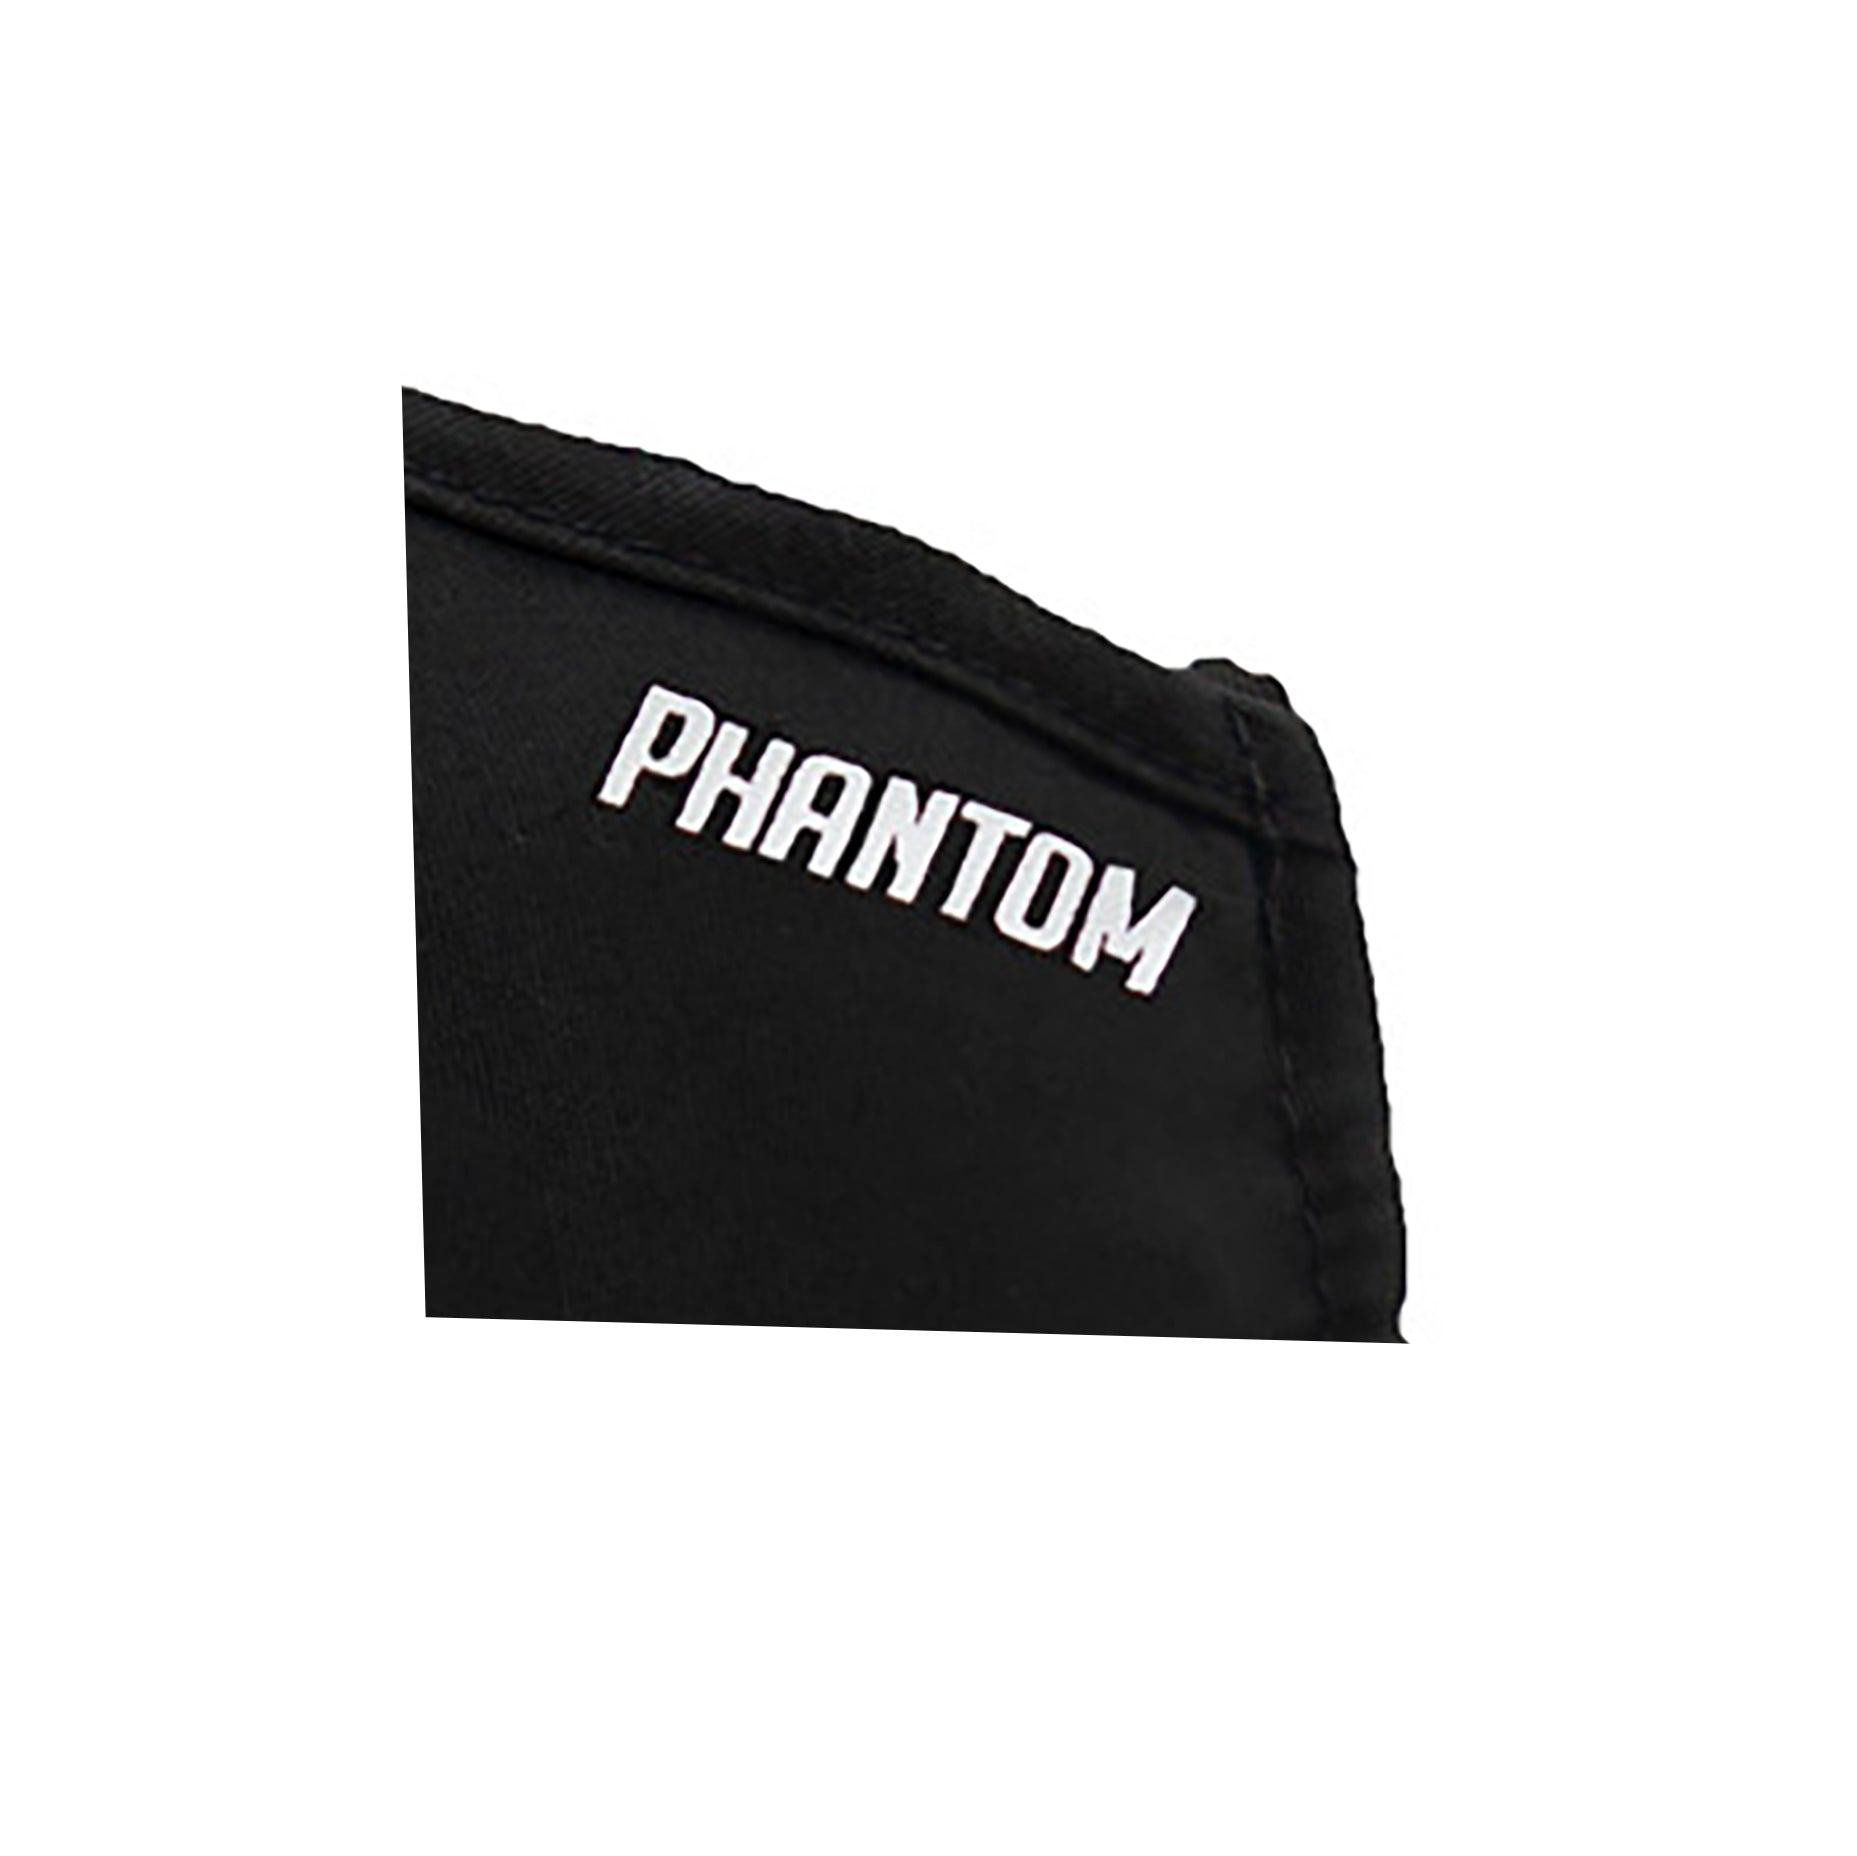 PHANTOM Black Face Mask (Limited Edition)